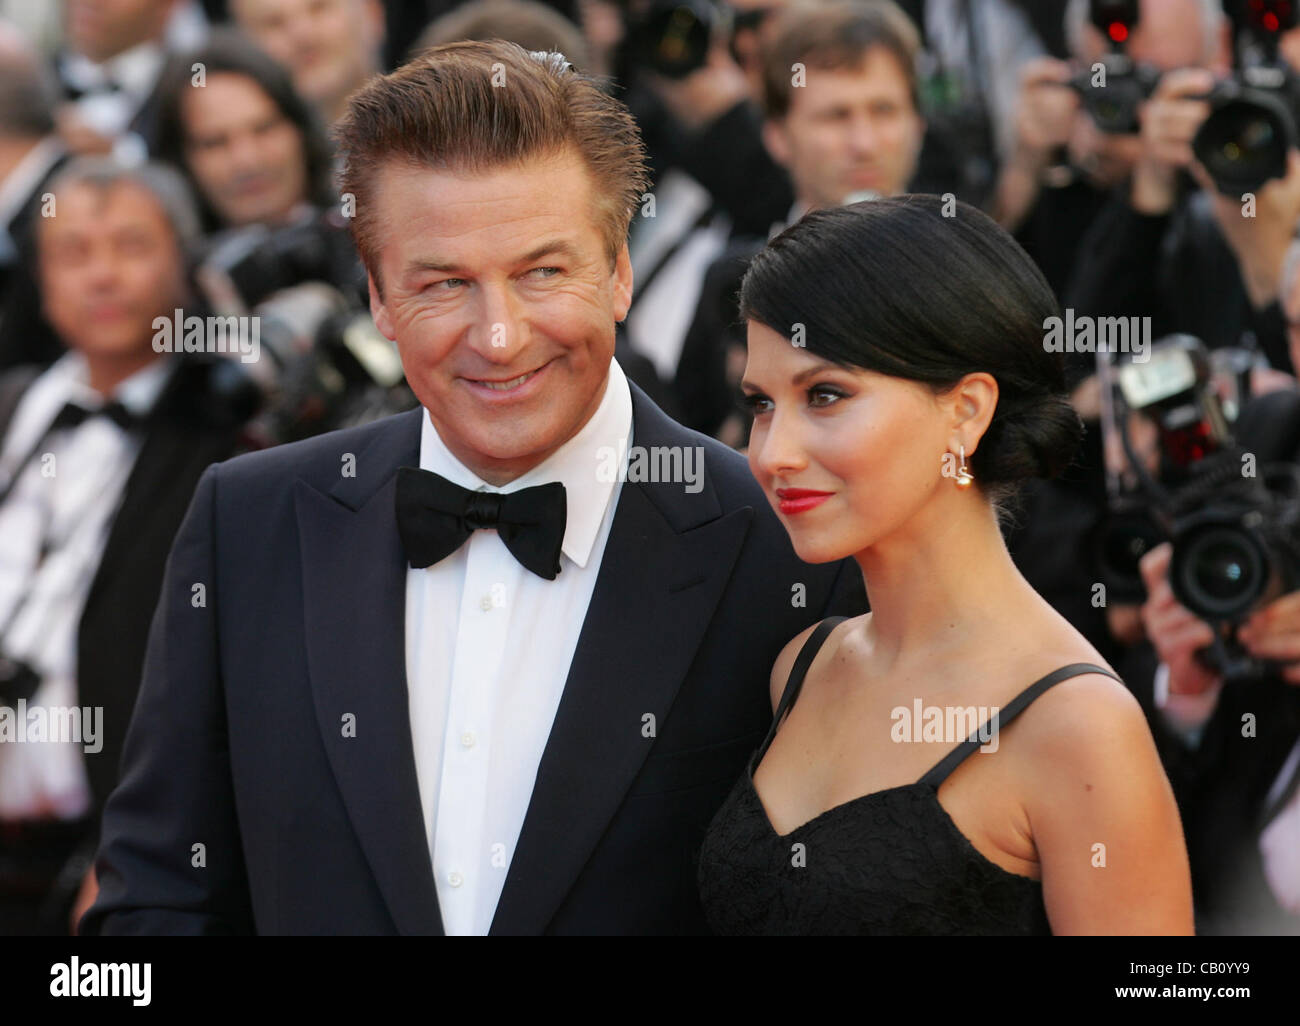 Cannes, France, 16/05/2012: Alec Baldwin arrives for the Moonrise Kingdom premiere during the 65th Annual Cannes - Stock Image